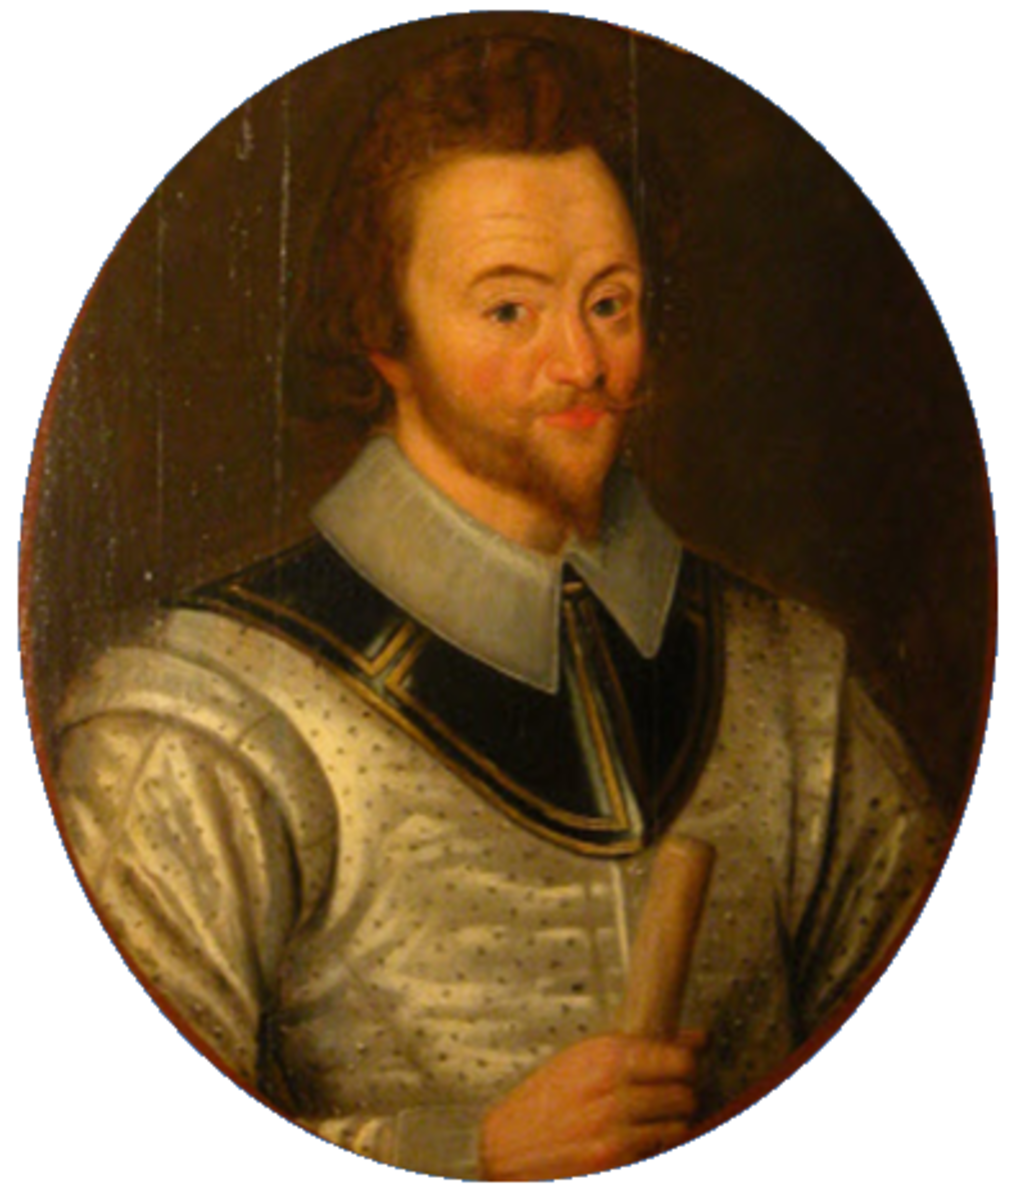 Sir John Norreys by an unknown artist.